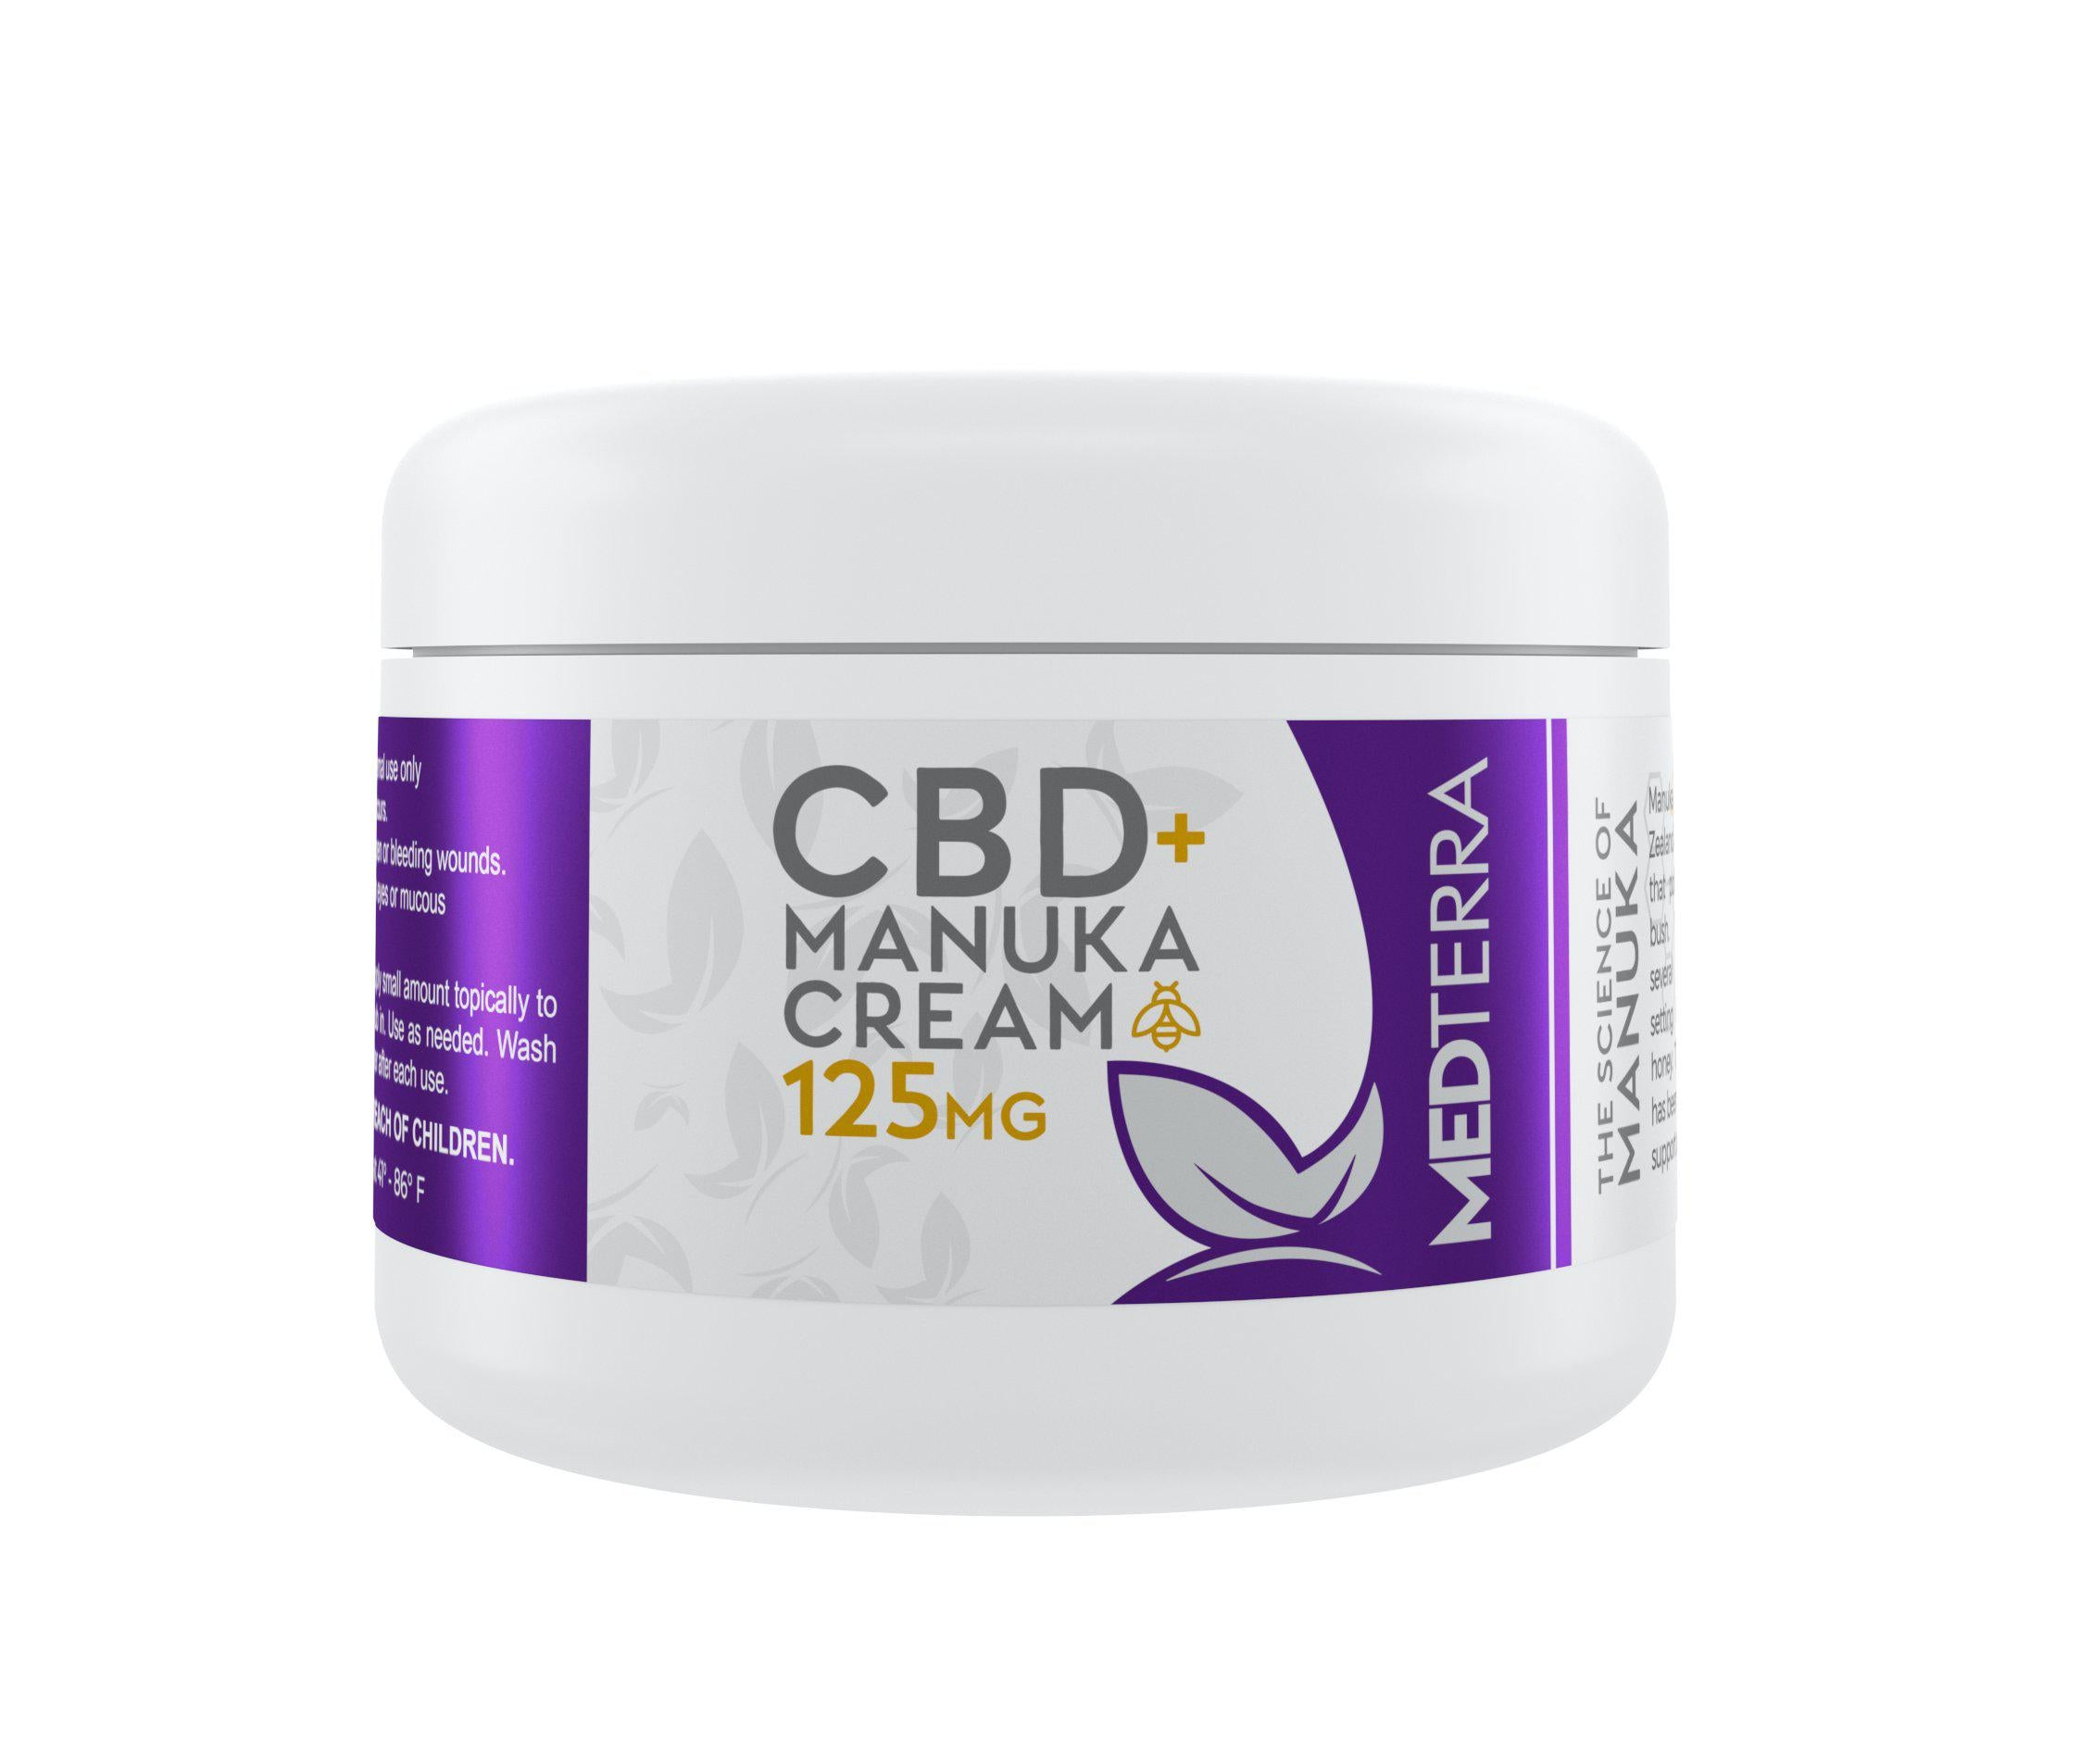 Medterra - CBD + Manuka Cream 125mg - 30ml